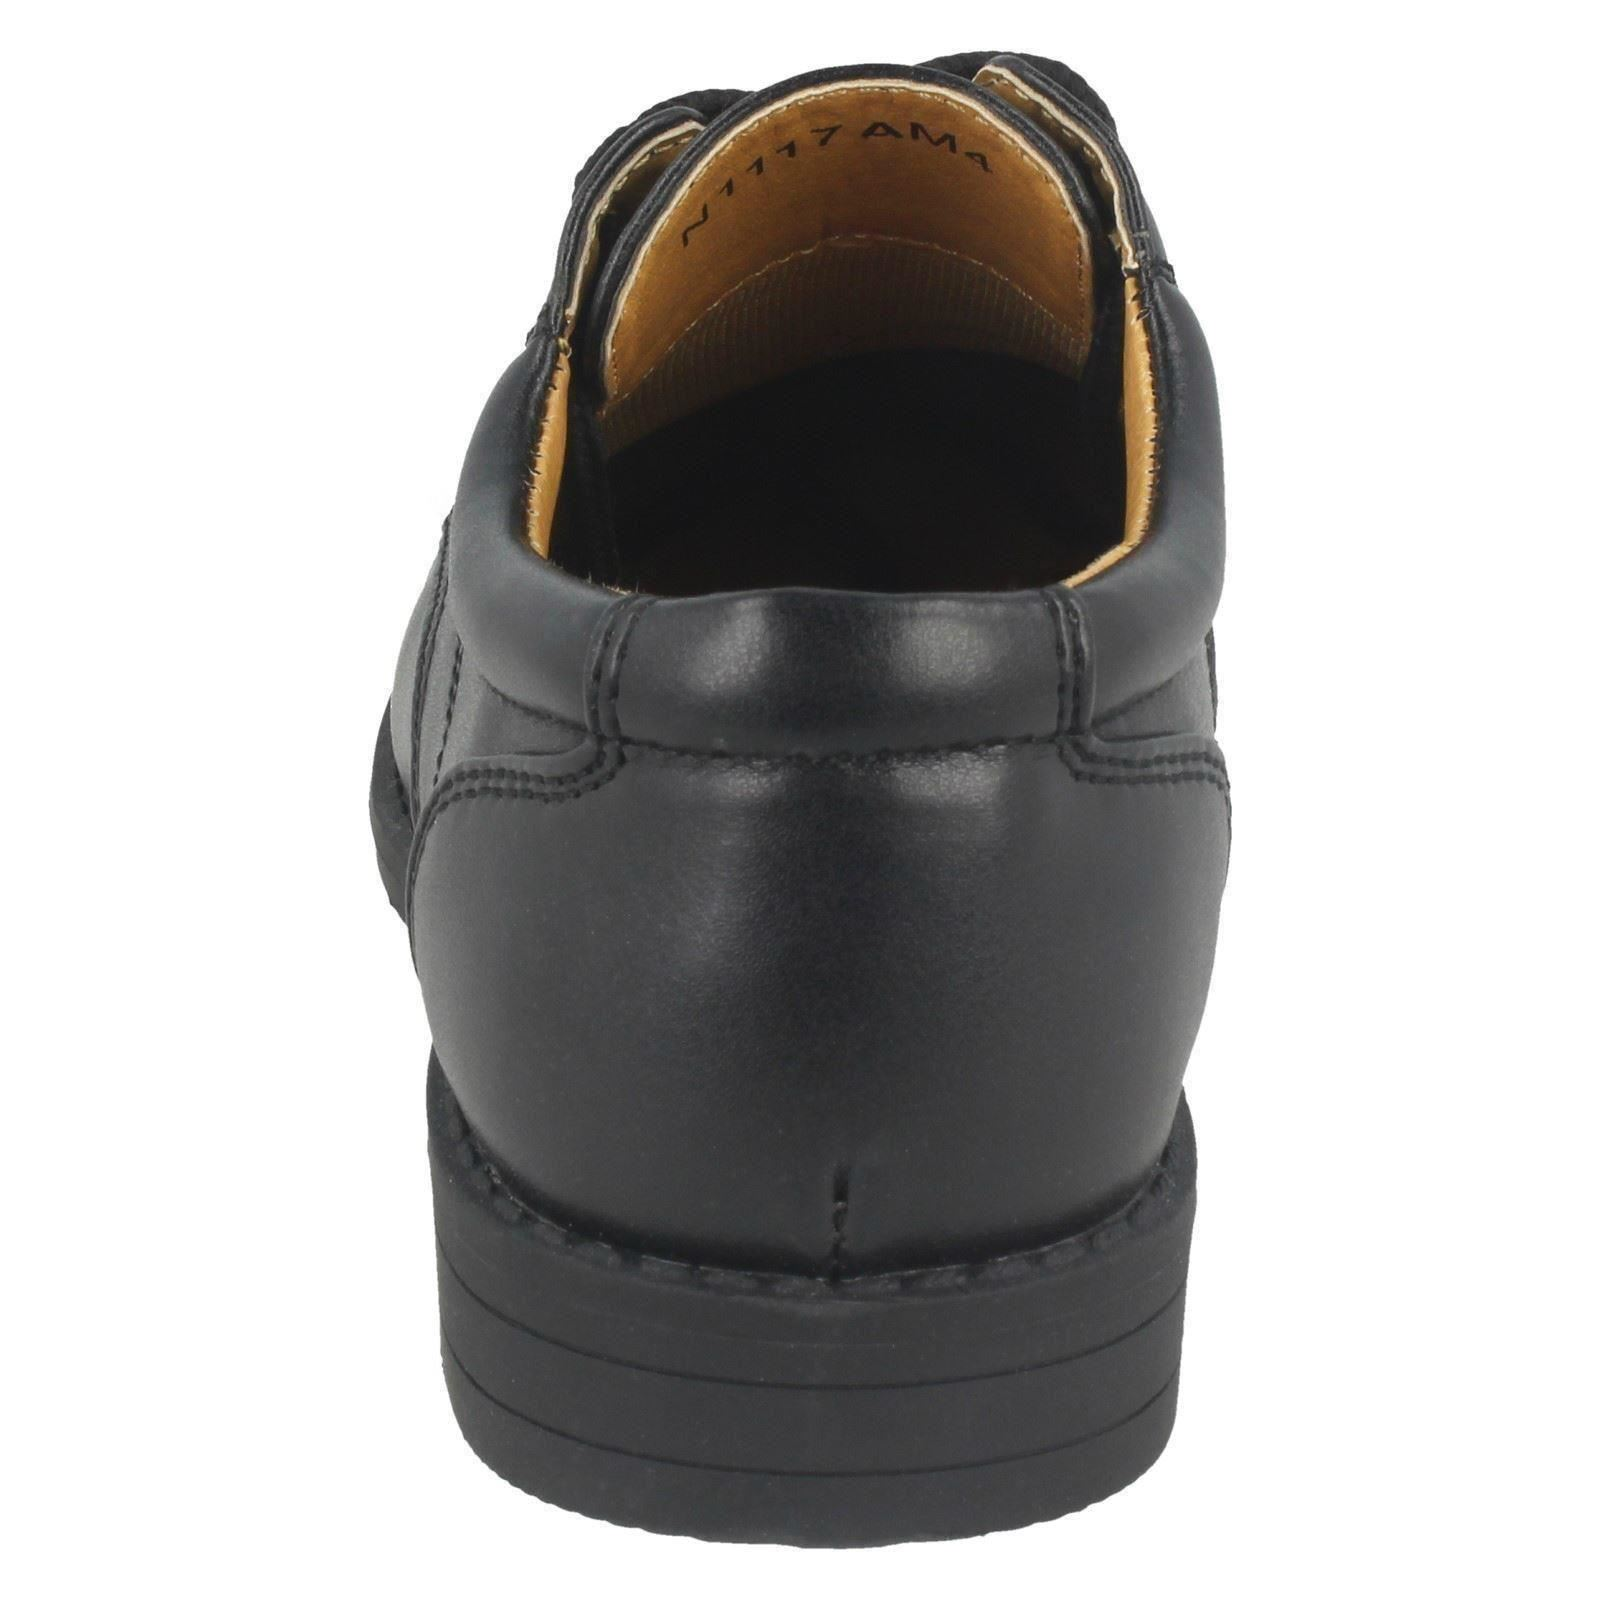 Boys Cool For School Lace Up Shoes N1117